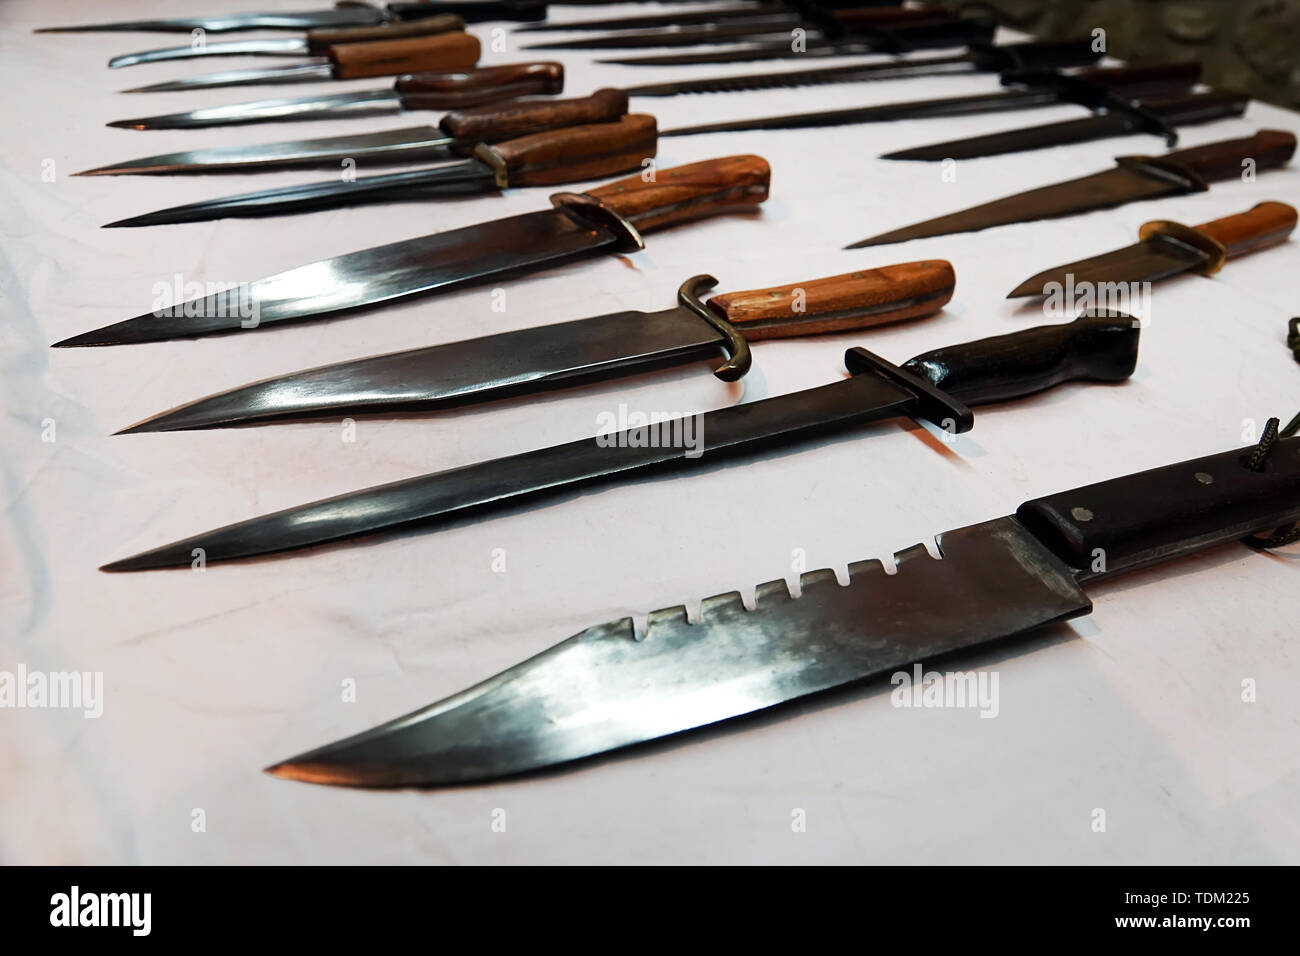 The exhibition sale of various knives of manual and industrial production . reconstruction of medieval blades - Stock Image